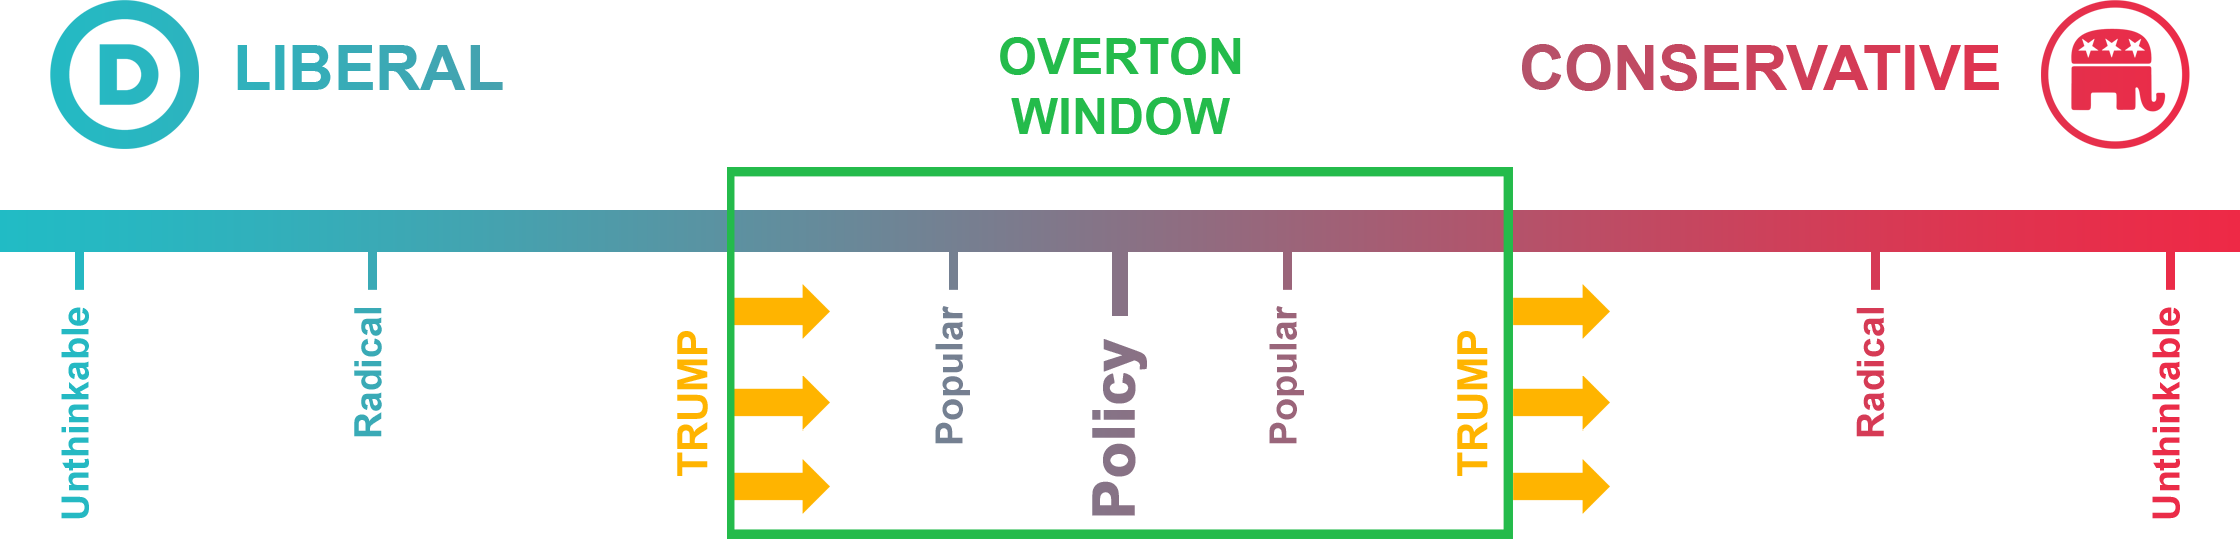 Simplified view of the political range in the US and the shift of the Overton window to the right due to Donald Trump's presidency.